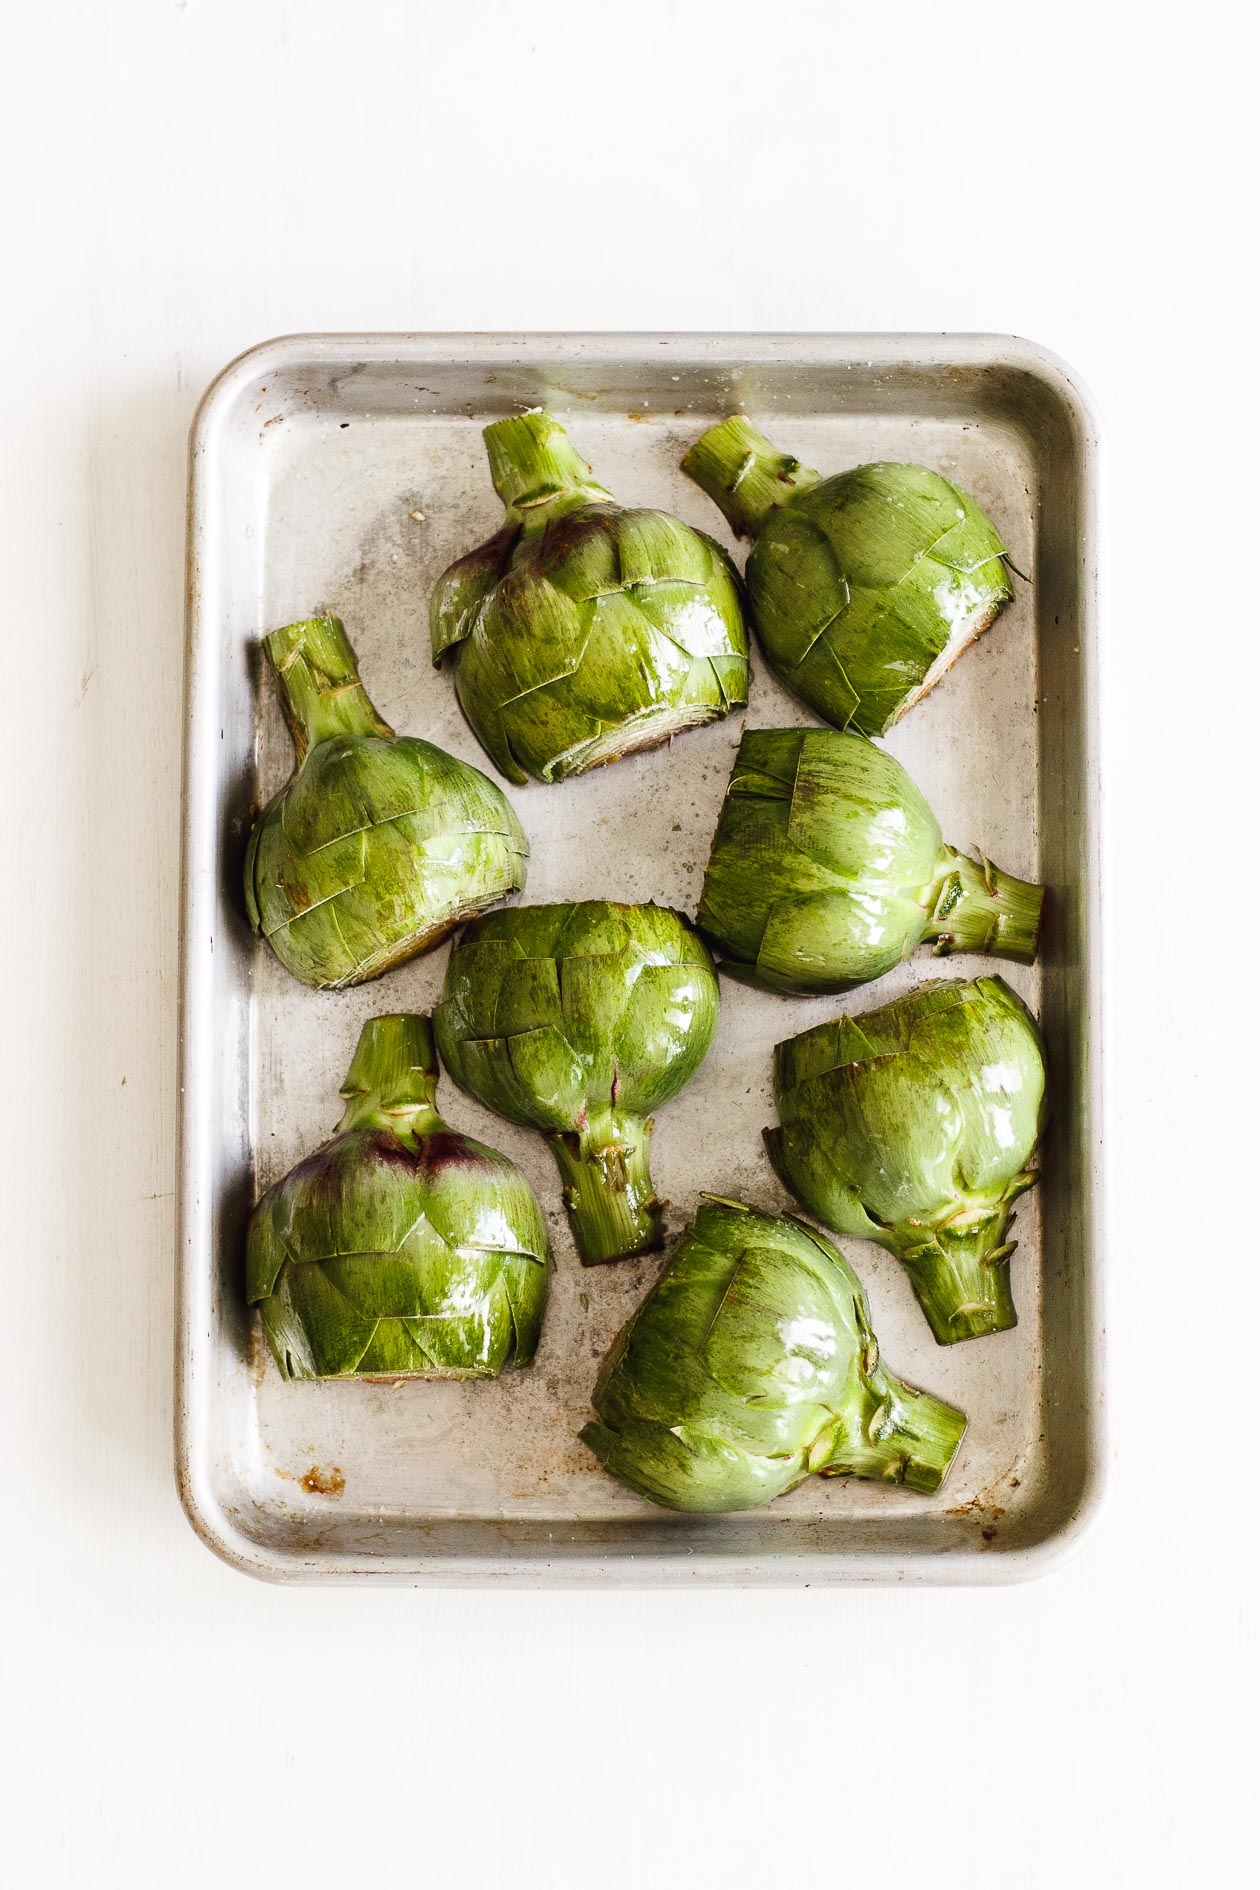 halved artichokes on a sheet pan